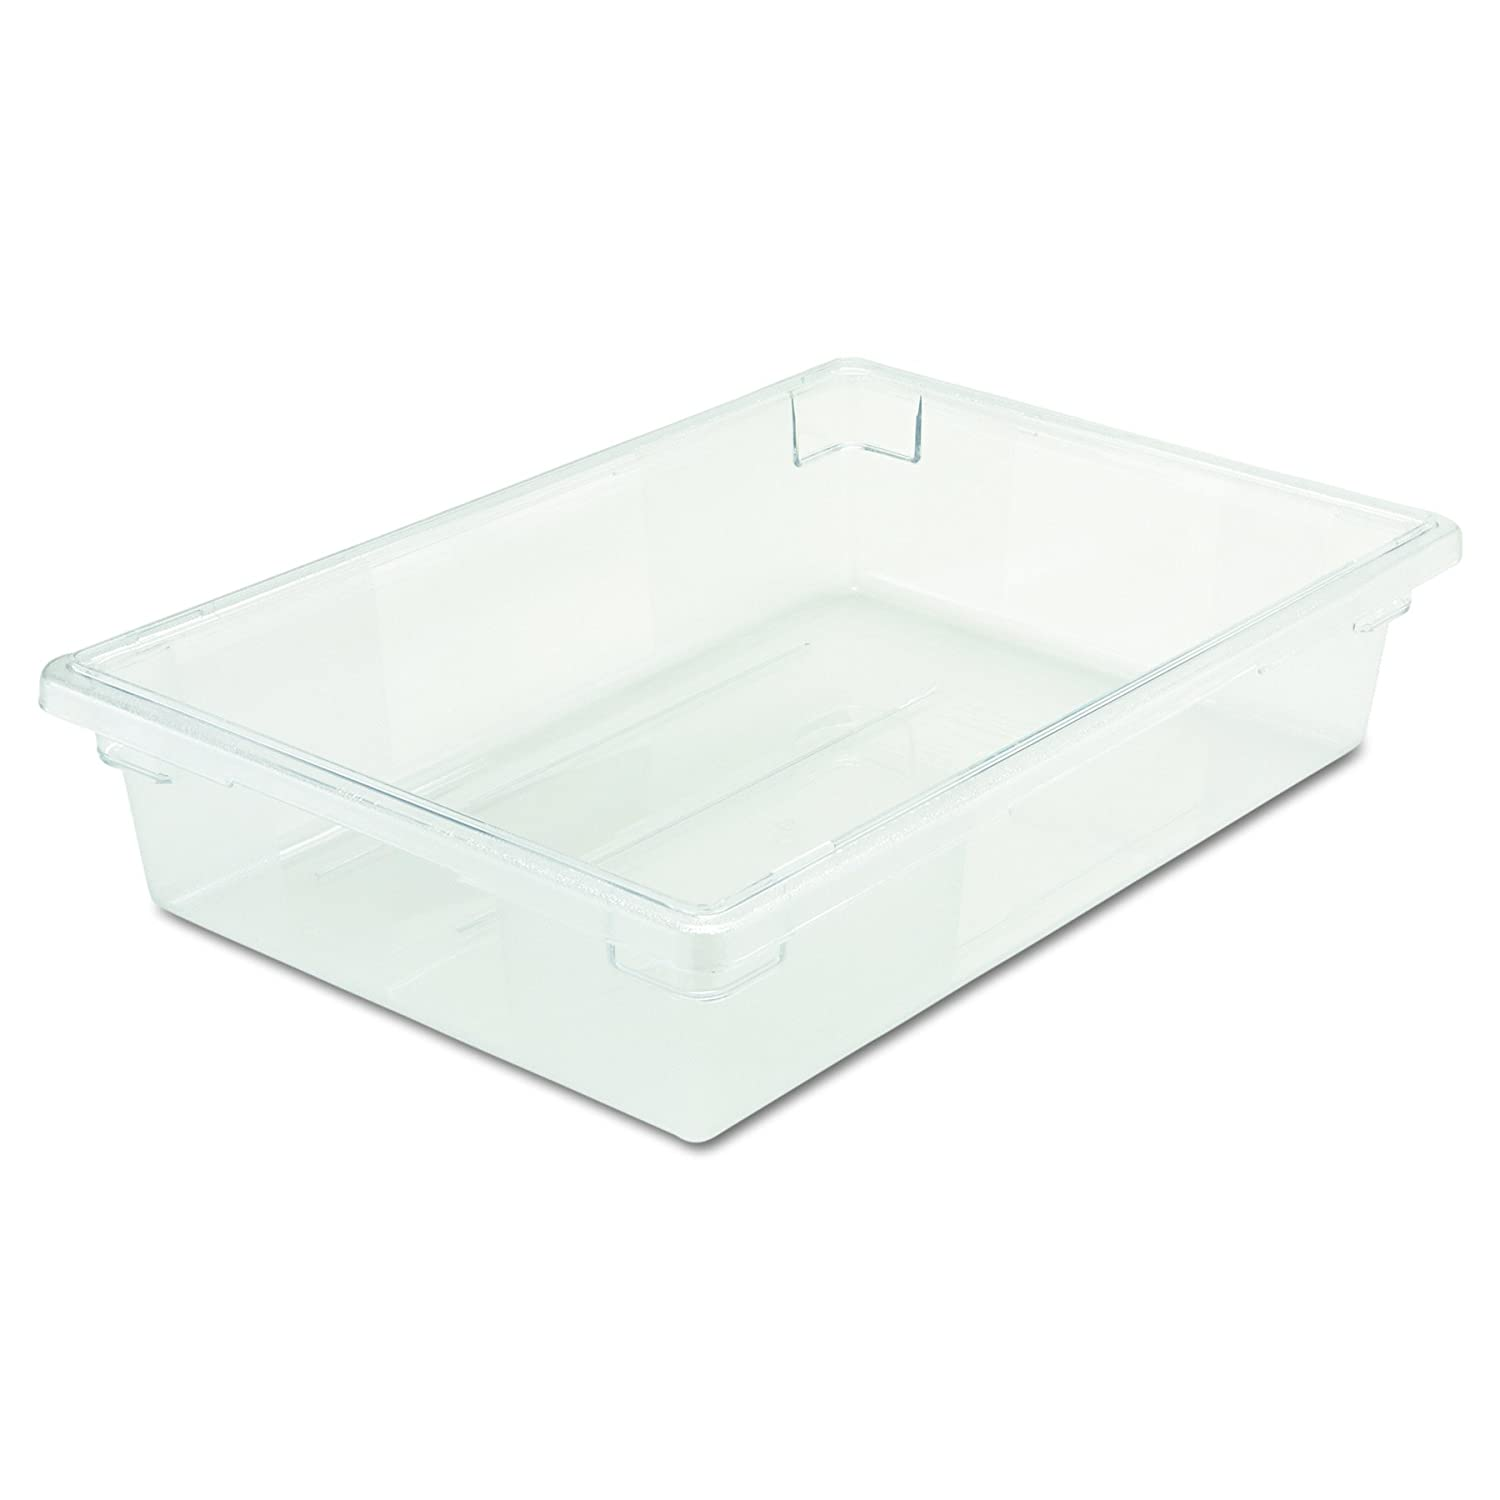 Rubbermaid Commercial 3308CLE Food/Tote Boxes, 8 1/2 gal, 26 w x 18 d x 6 h, Clear